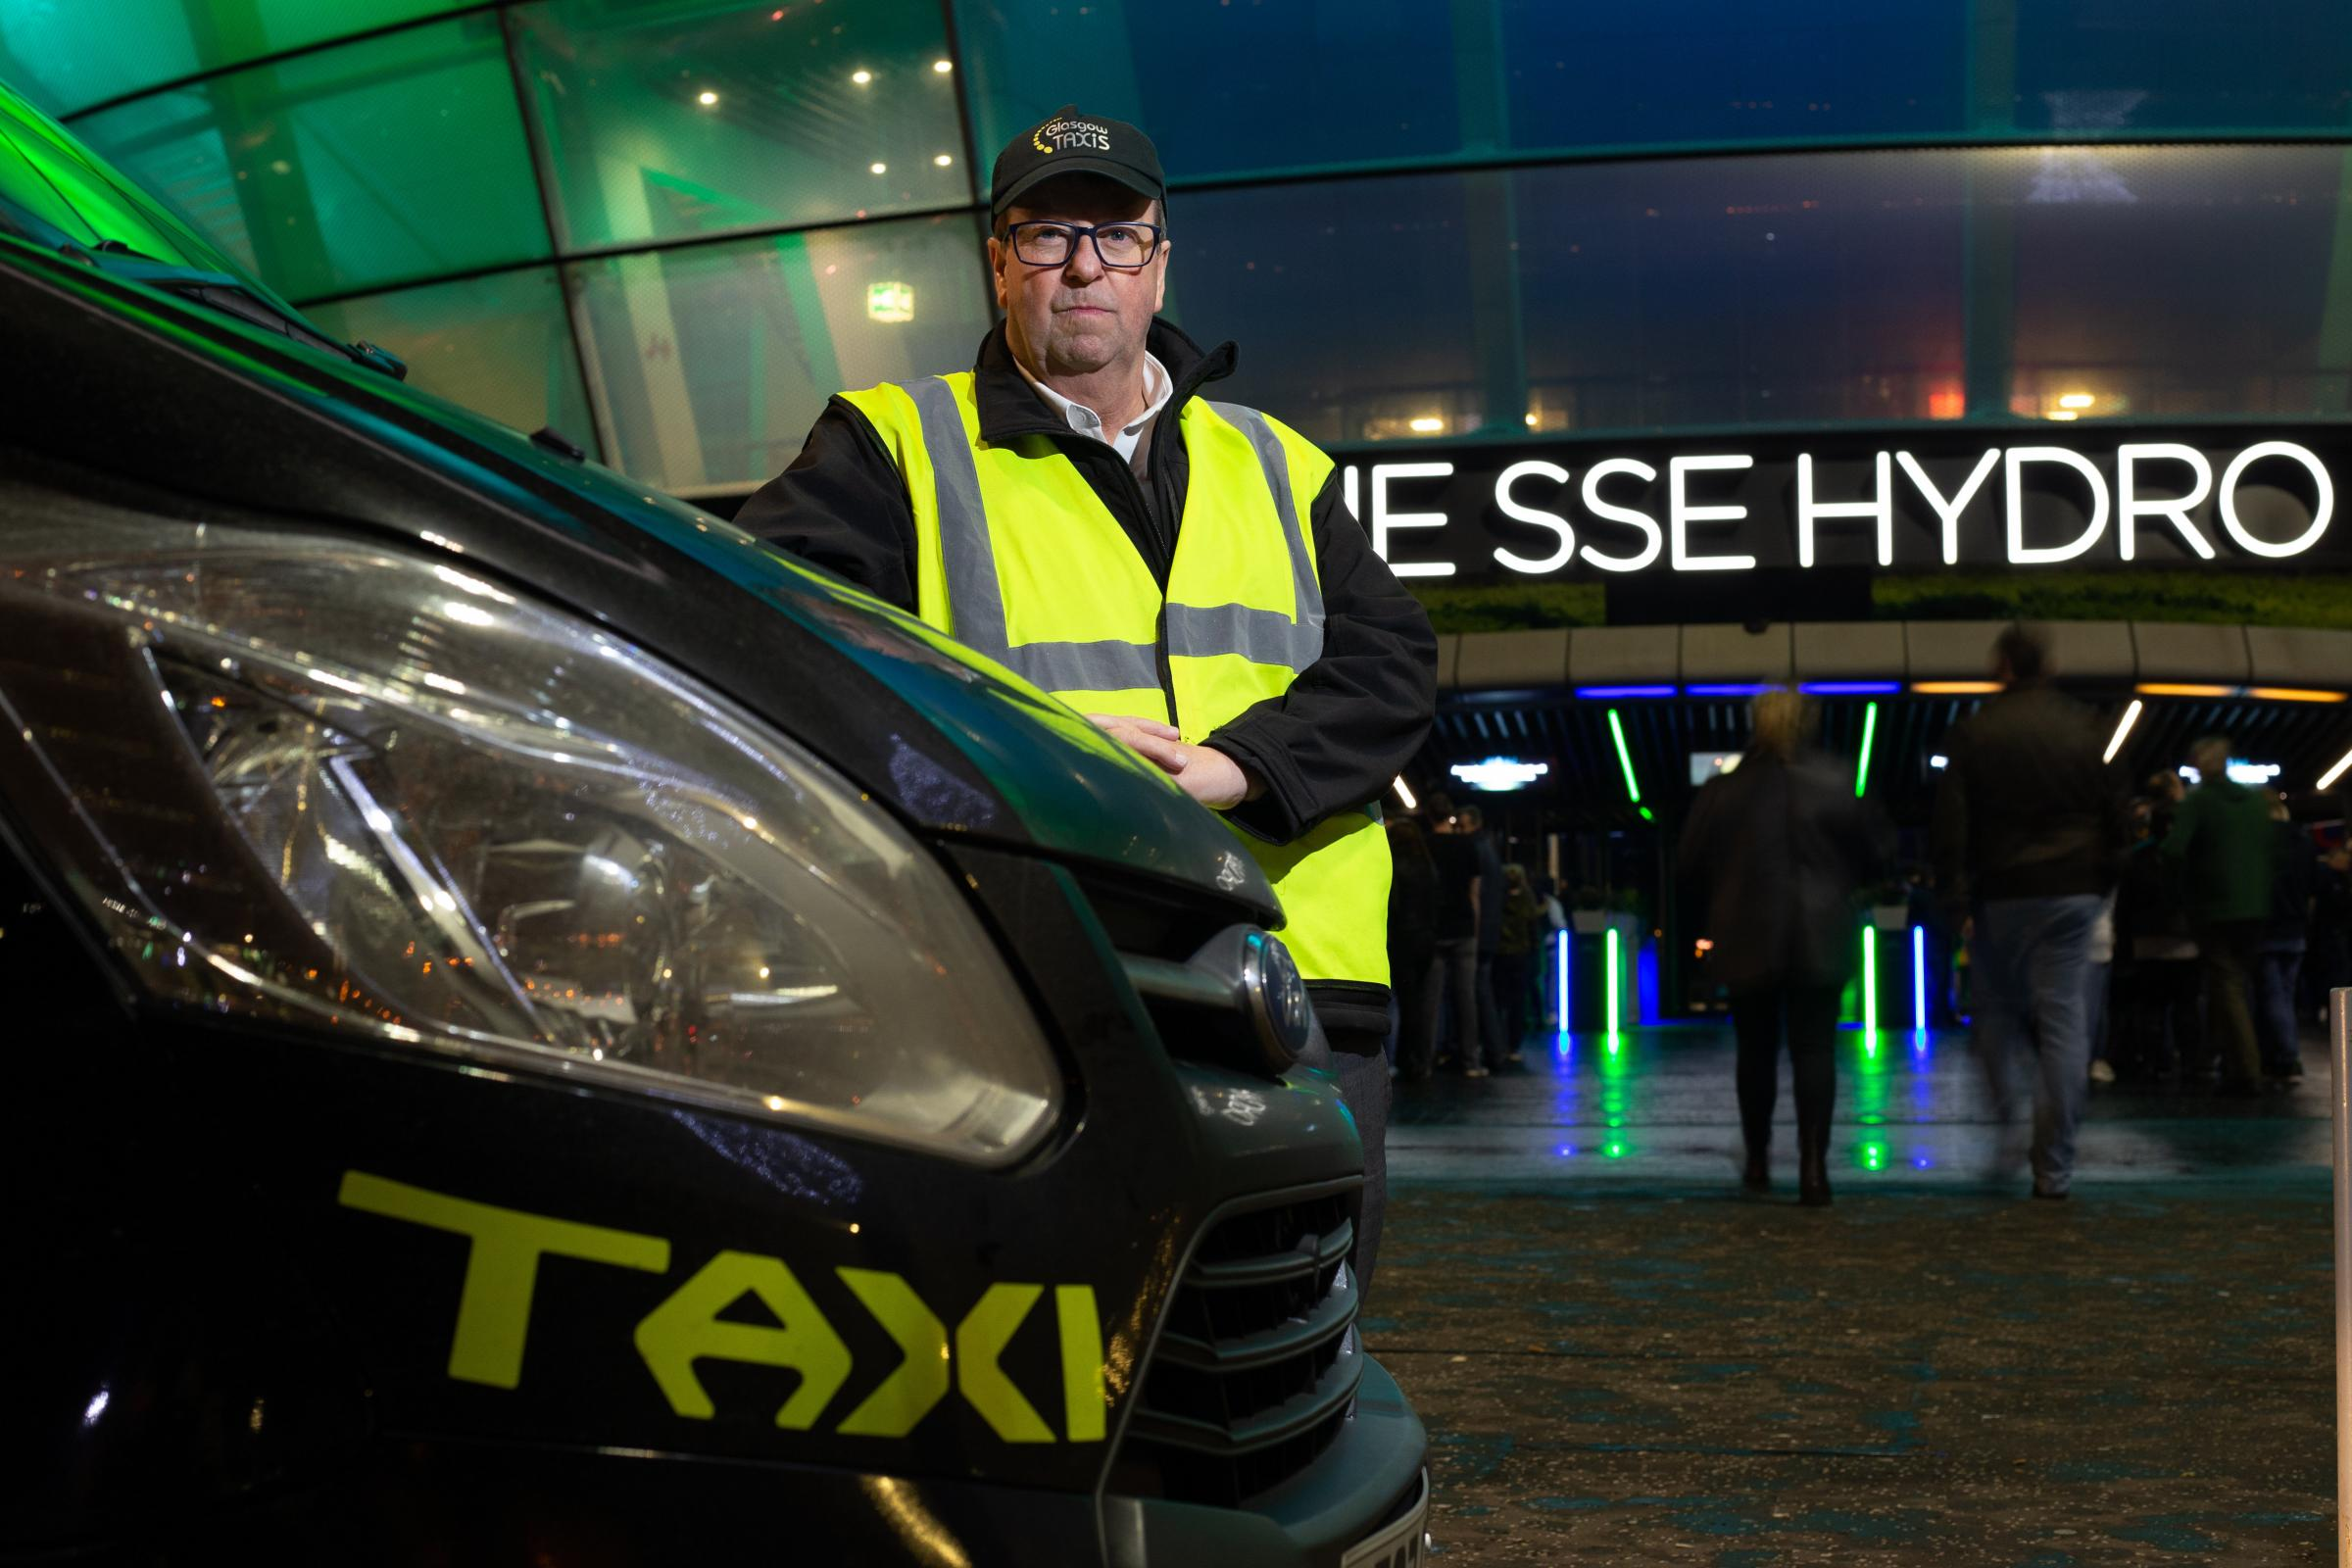 Taxi marshal Martin Garrity pictured at the taxi rank outside the SSE Hydro in Glasgow